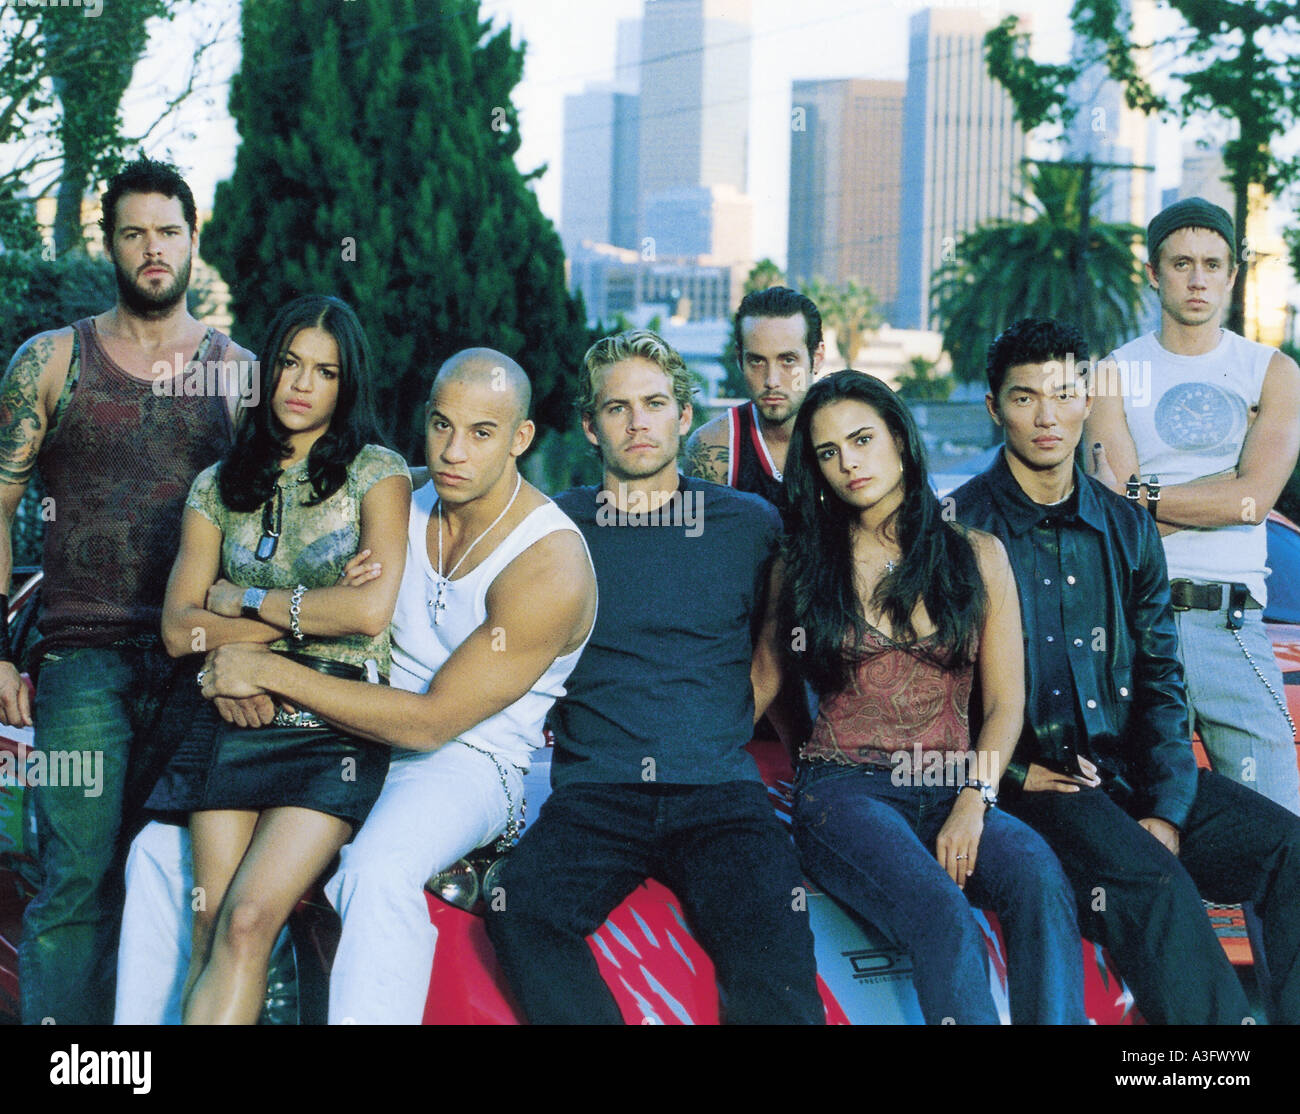 2 FAST 2 FURIOUS Universal 2003 film  about street racers - Stock Image